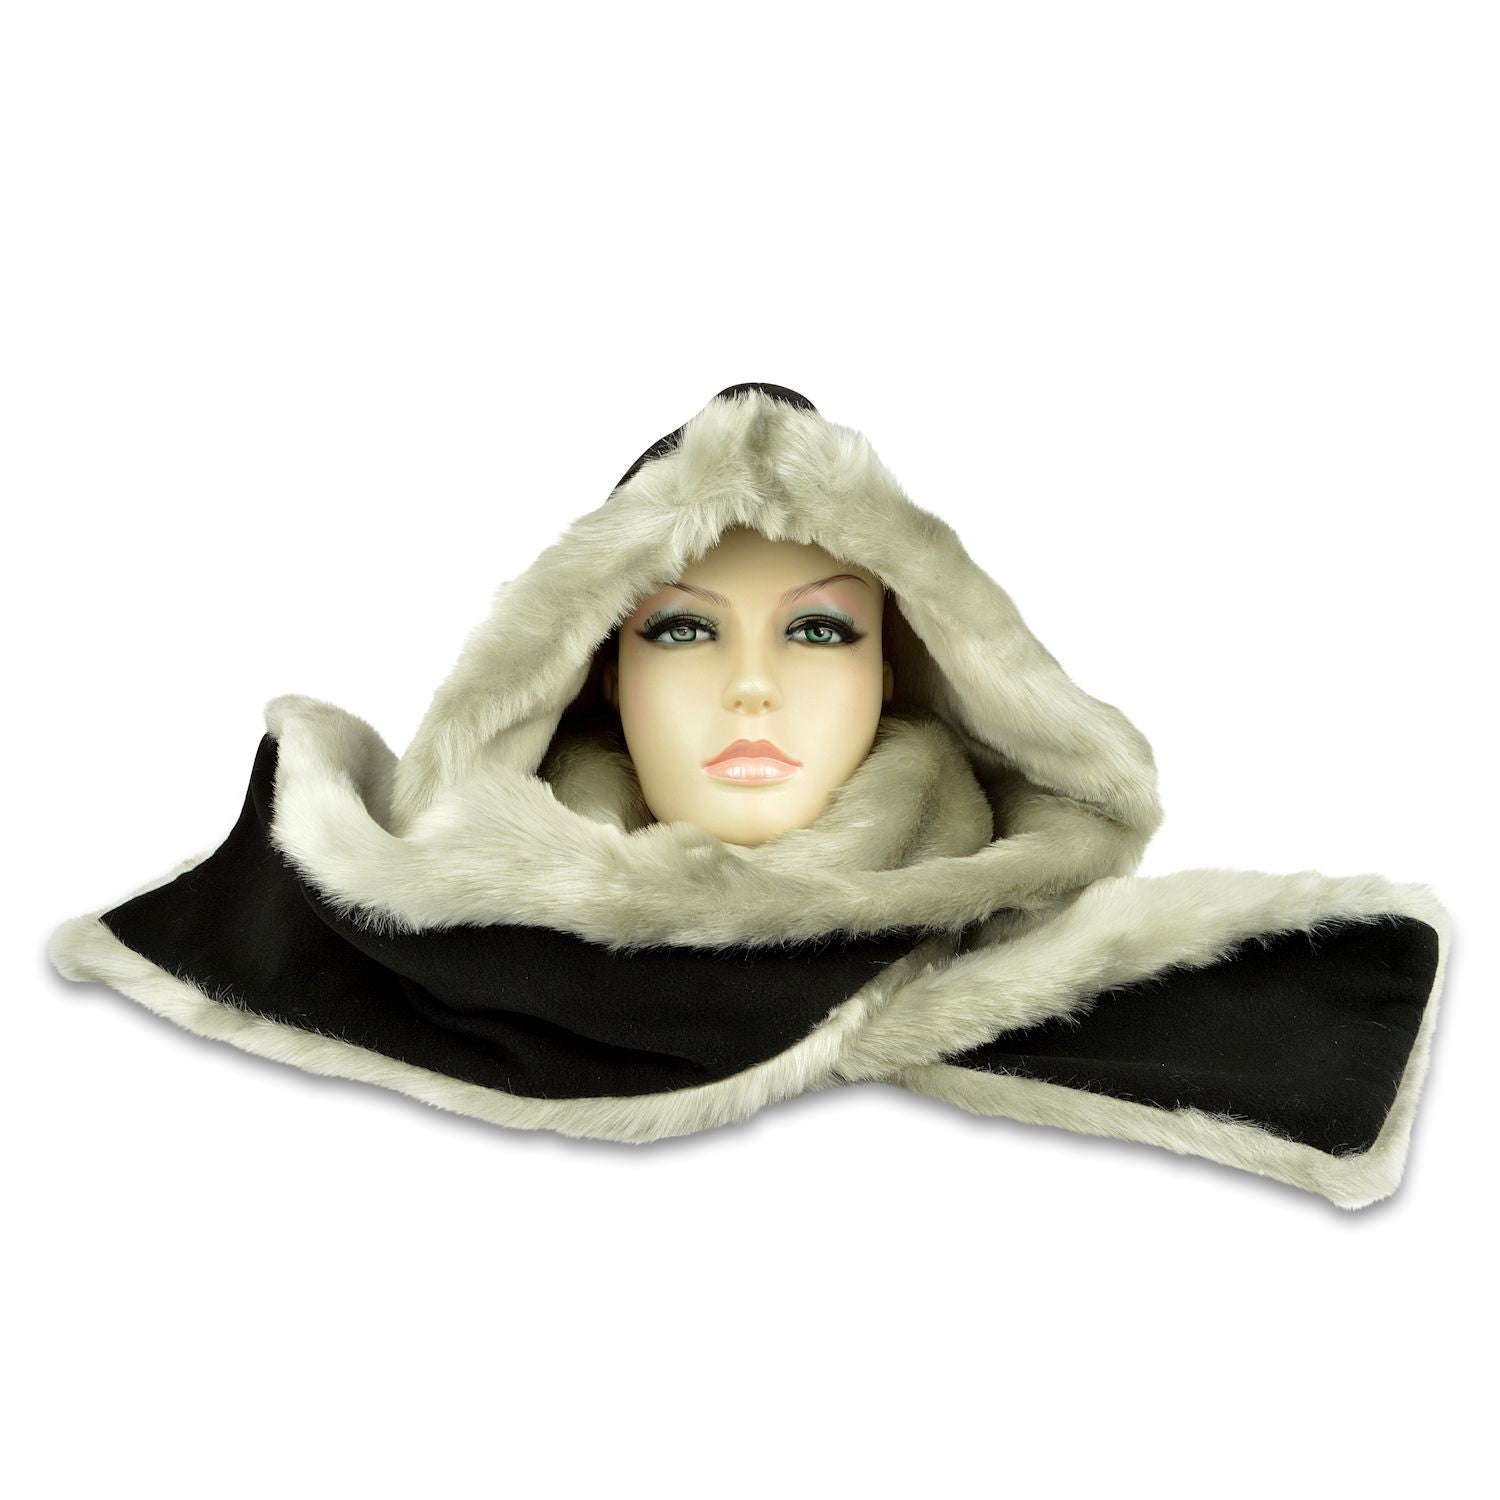 Hooded Scarf – Fleece & Faux Fur - Black Fleece / Silver Fur